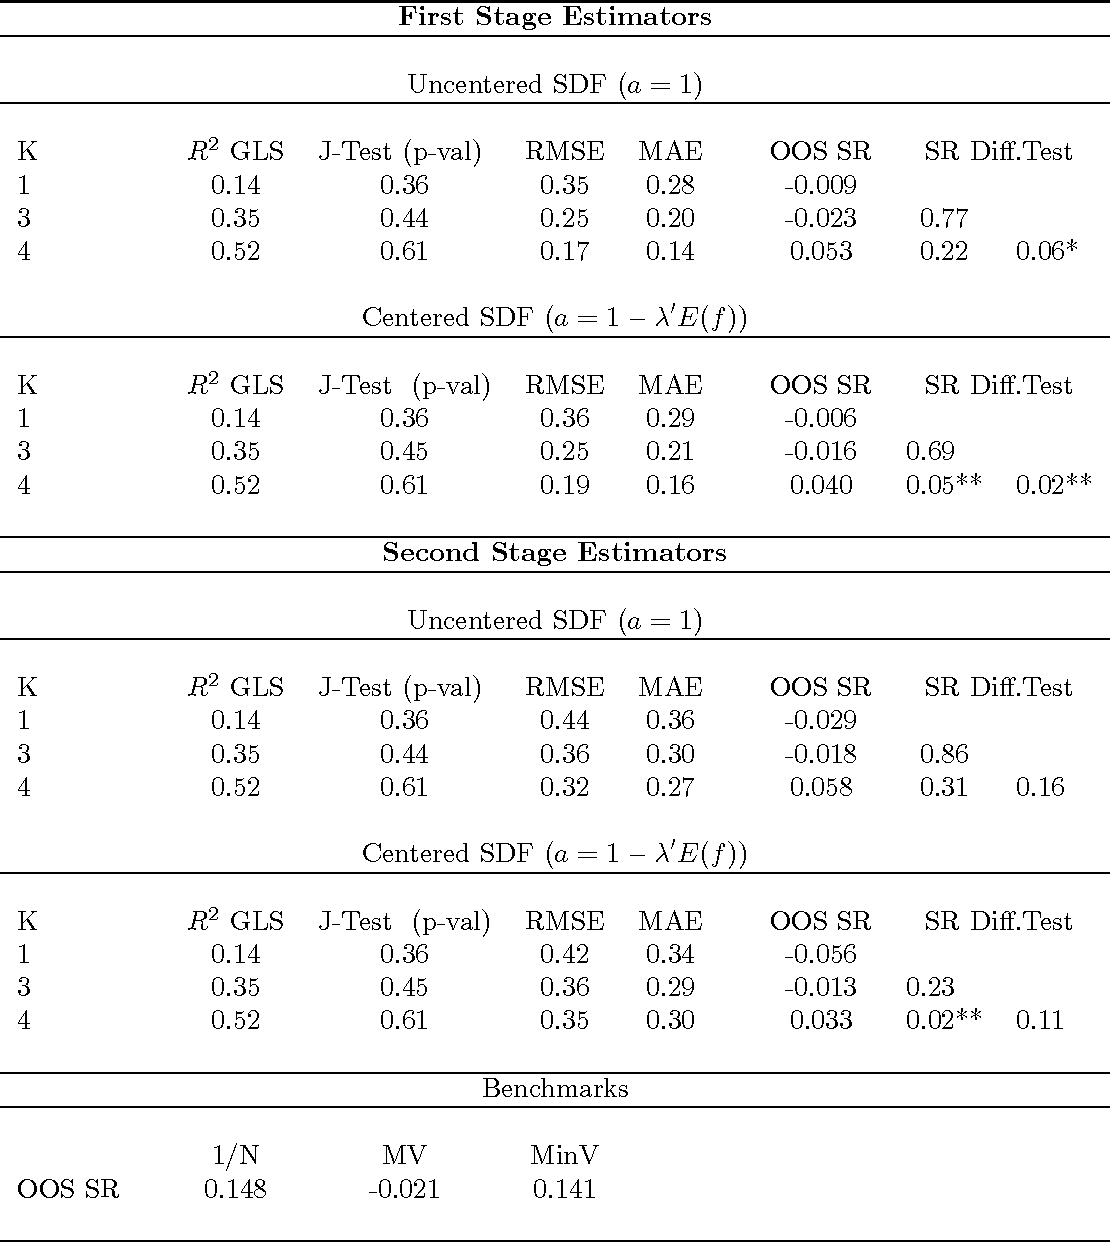 Table 2: Linear Asset Pricing Model Estimation and MV Portfolio Performance